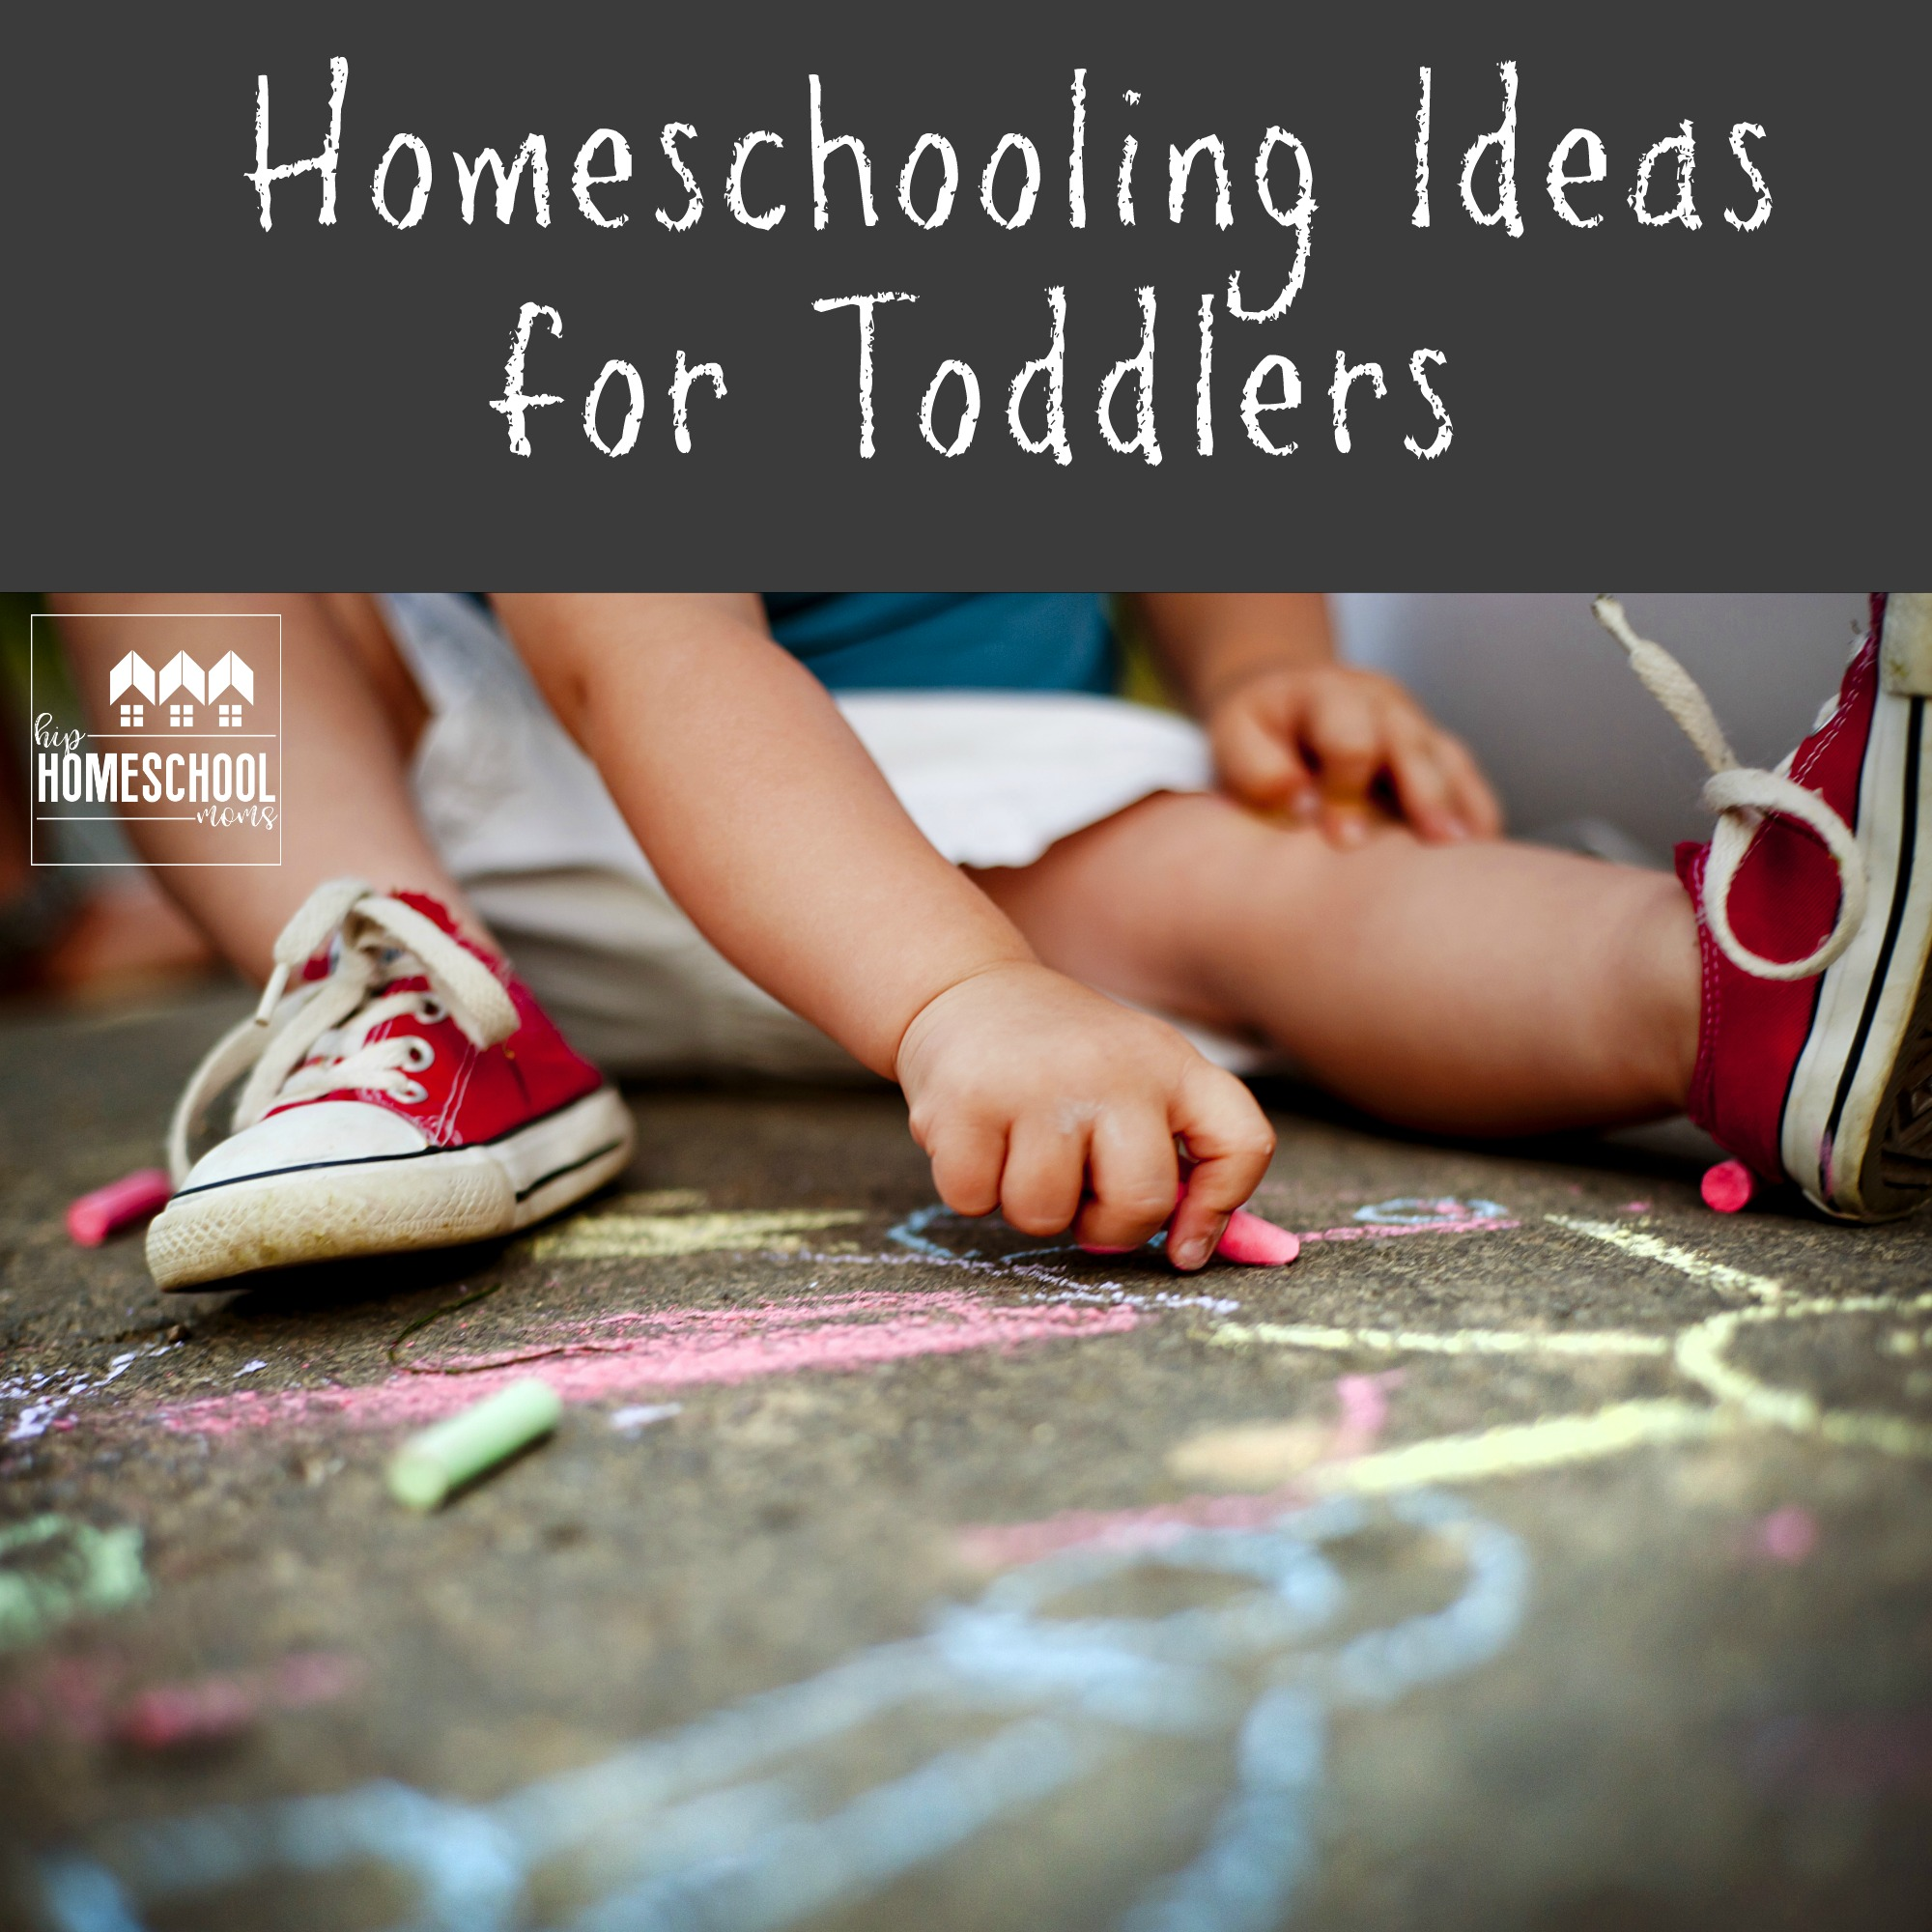 Homeschooling Ideas for Toddlers